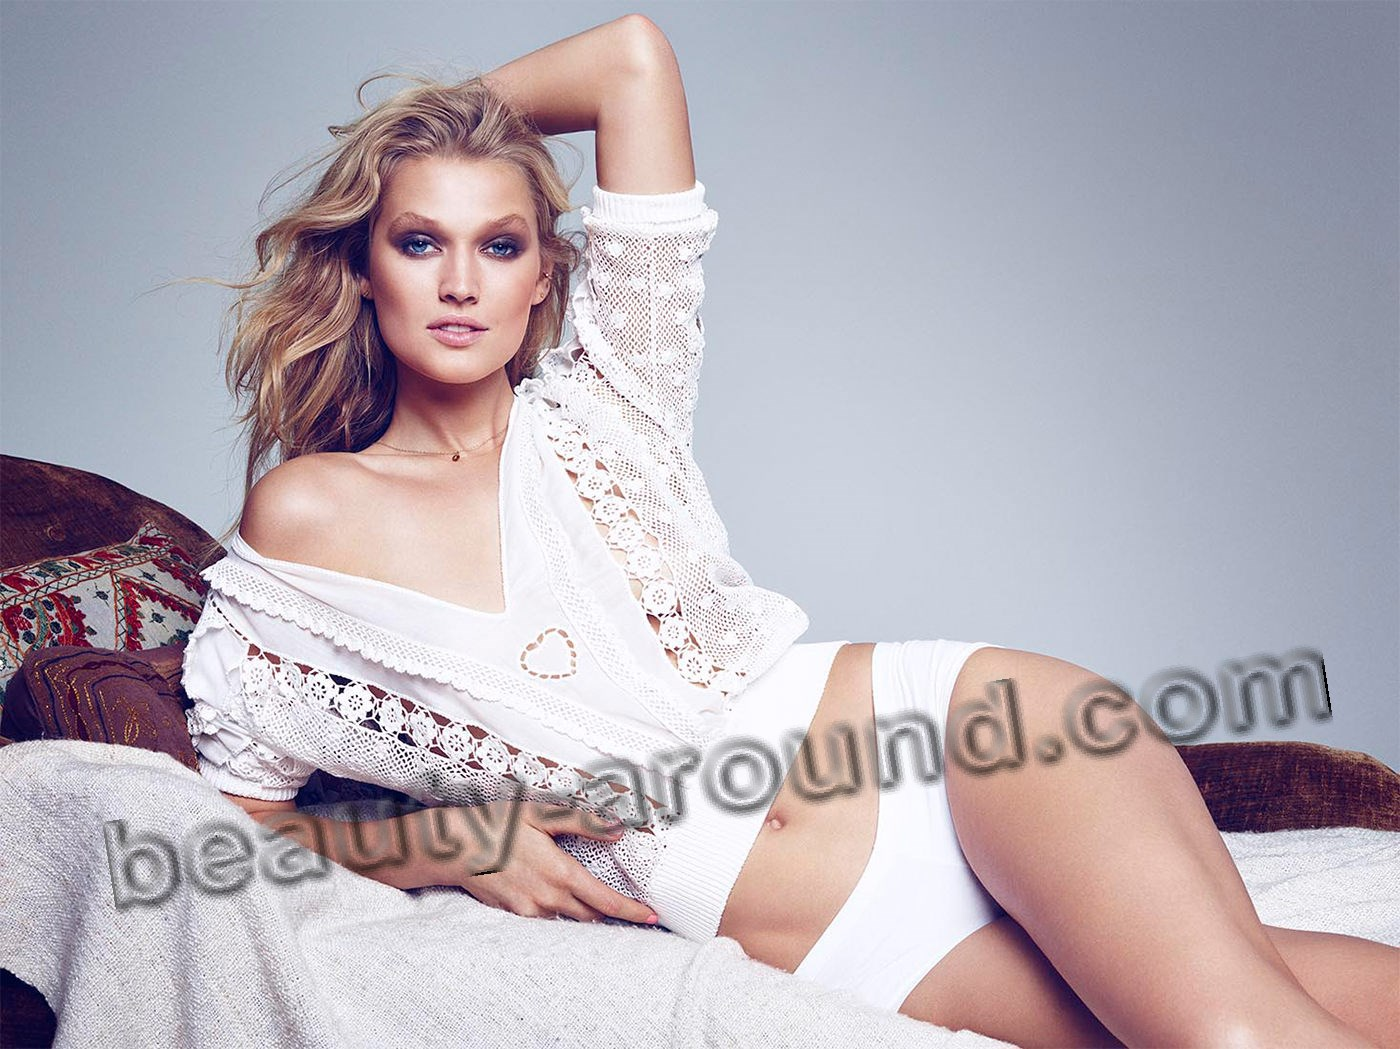 Leonardo DiCaprio's Girlfriend Toni Garrn German model